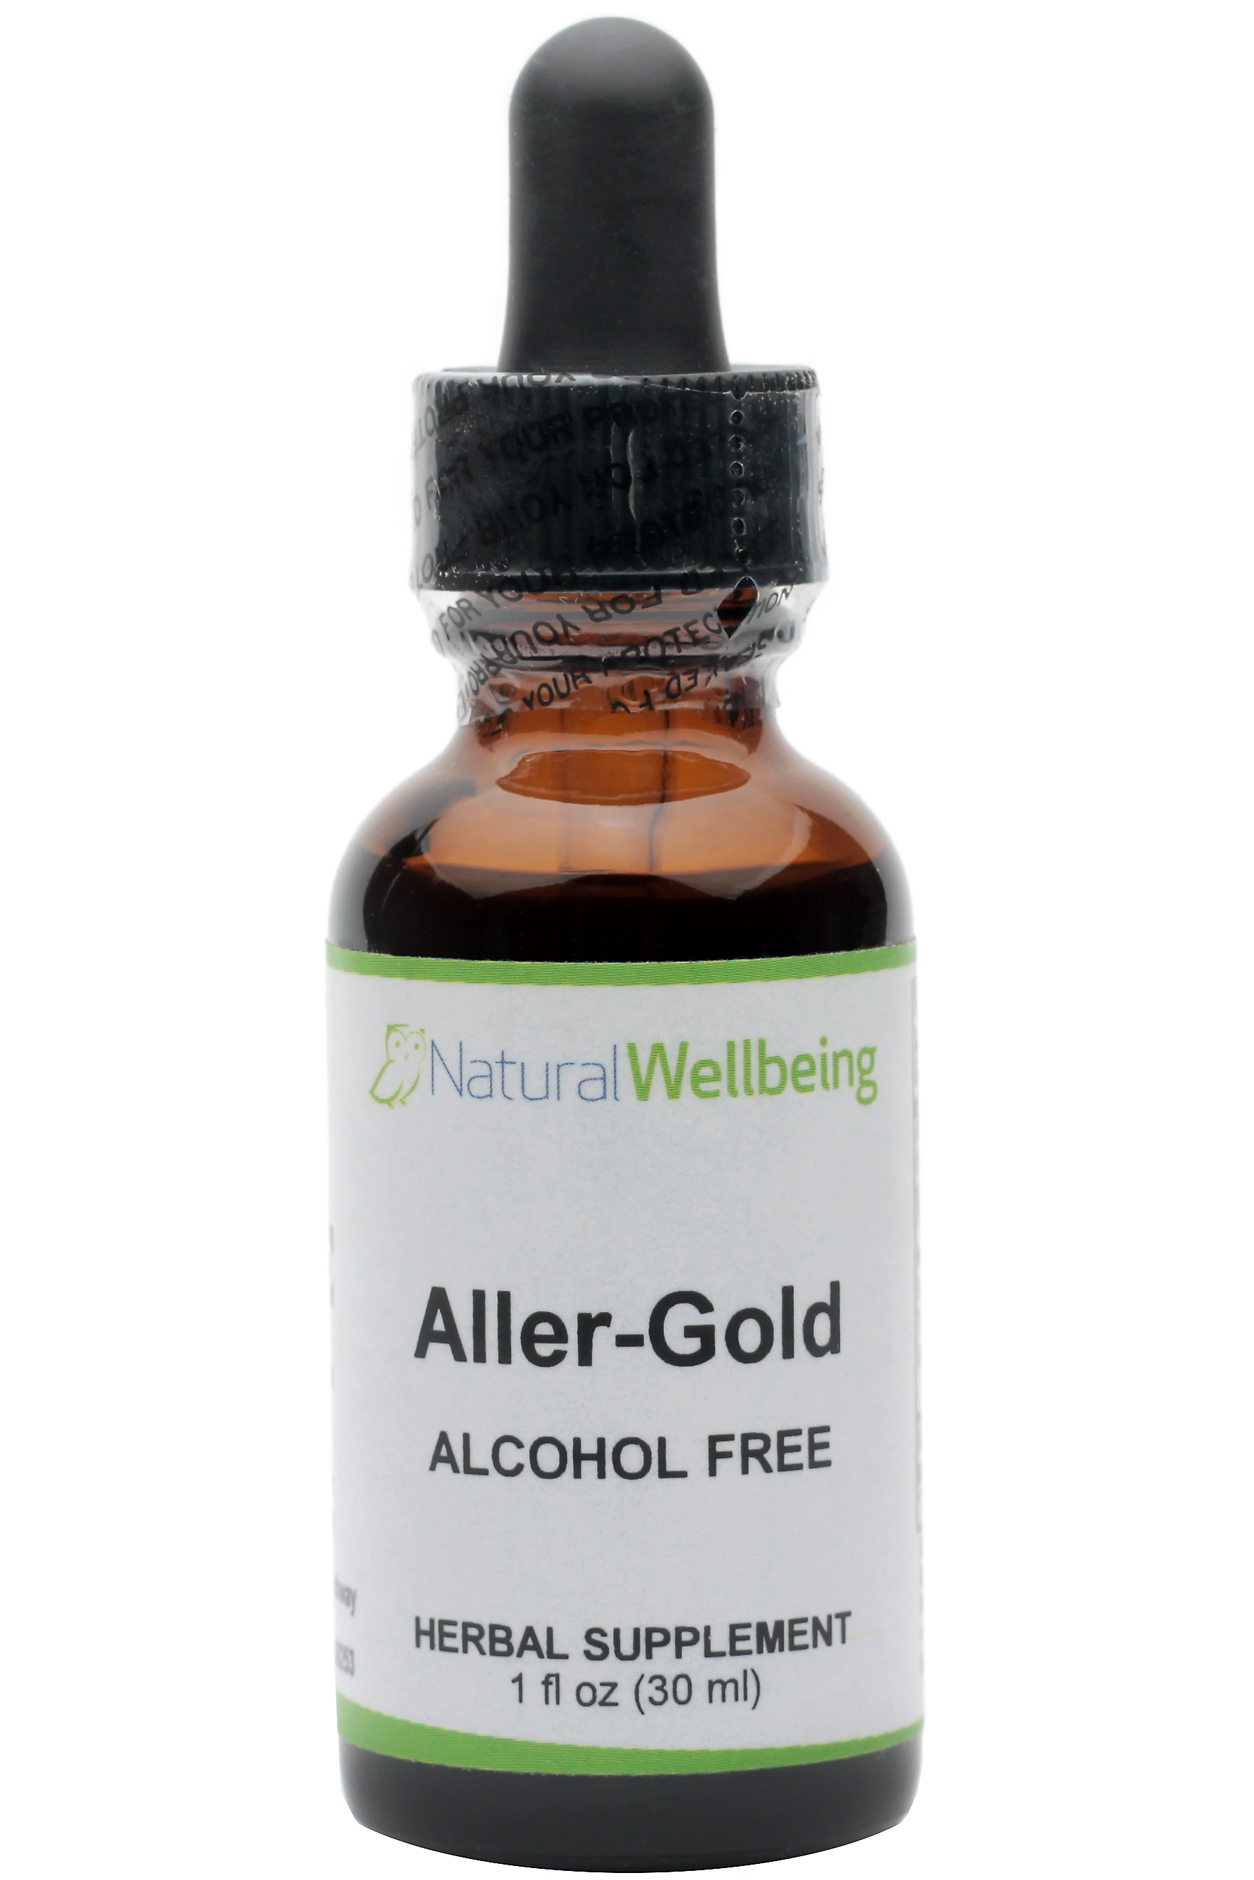 Aller-Gold (Alcohol-Free)